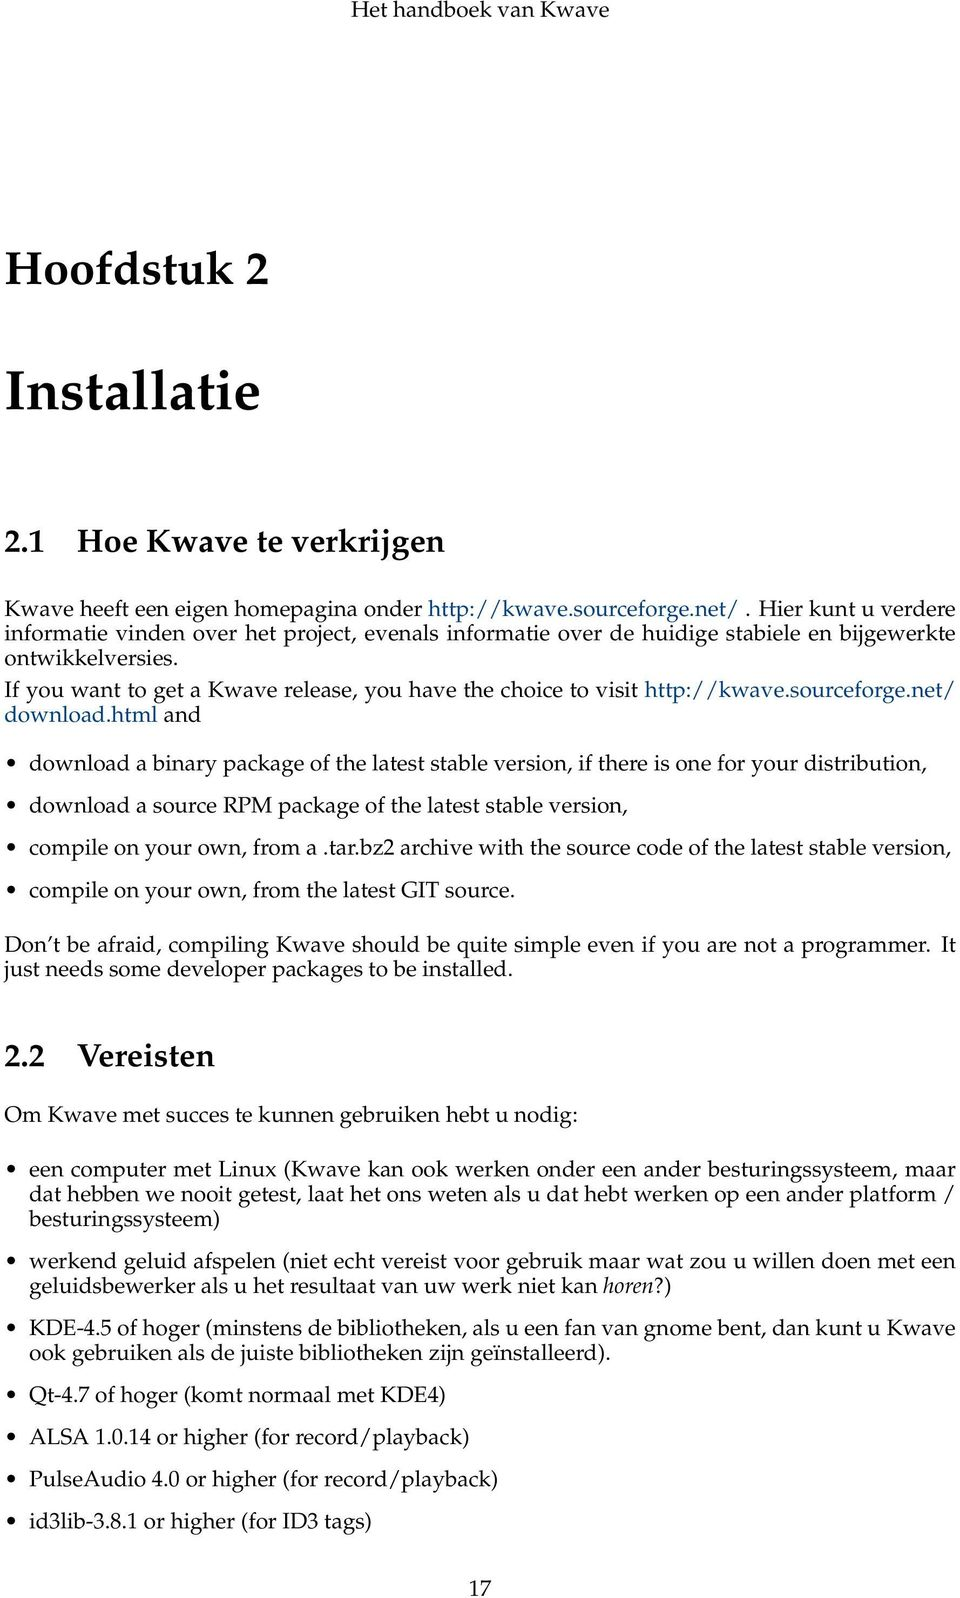 If you want to get a Kwave release, you have the choice to visit http://kwave.sourceforge.net/ download.